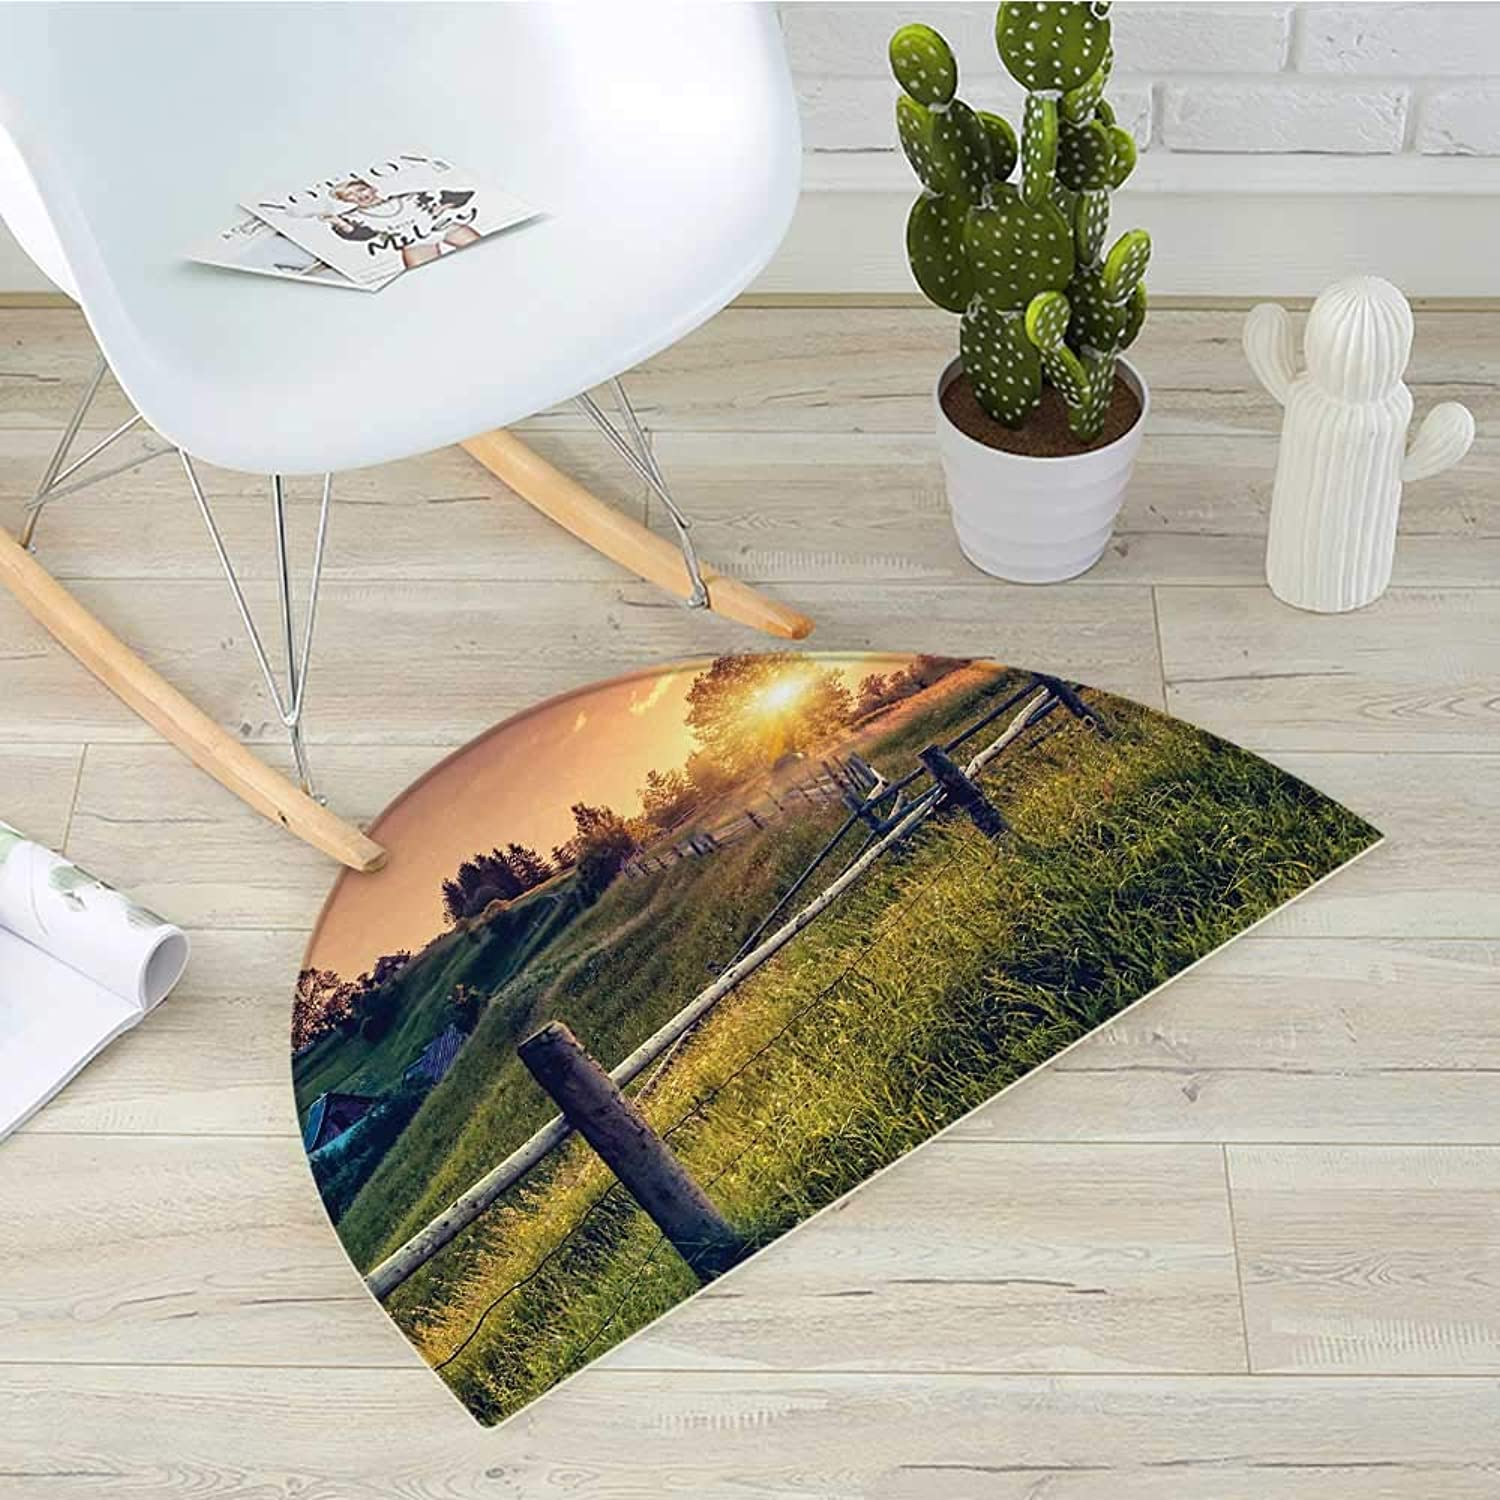 Europe Semicircular CushionMorning Sunbeams Over Countryside Farmhouse colorful Sky Carpathian Ukraine Entry Door Mat H 43.3  xD 64.9  Fern Green Yellow